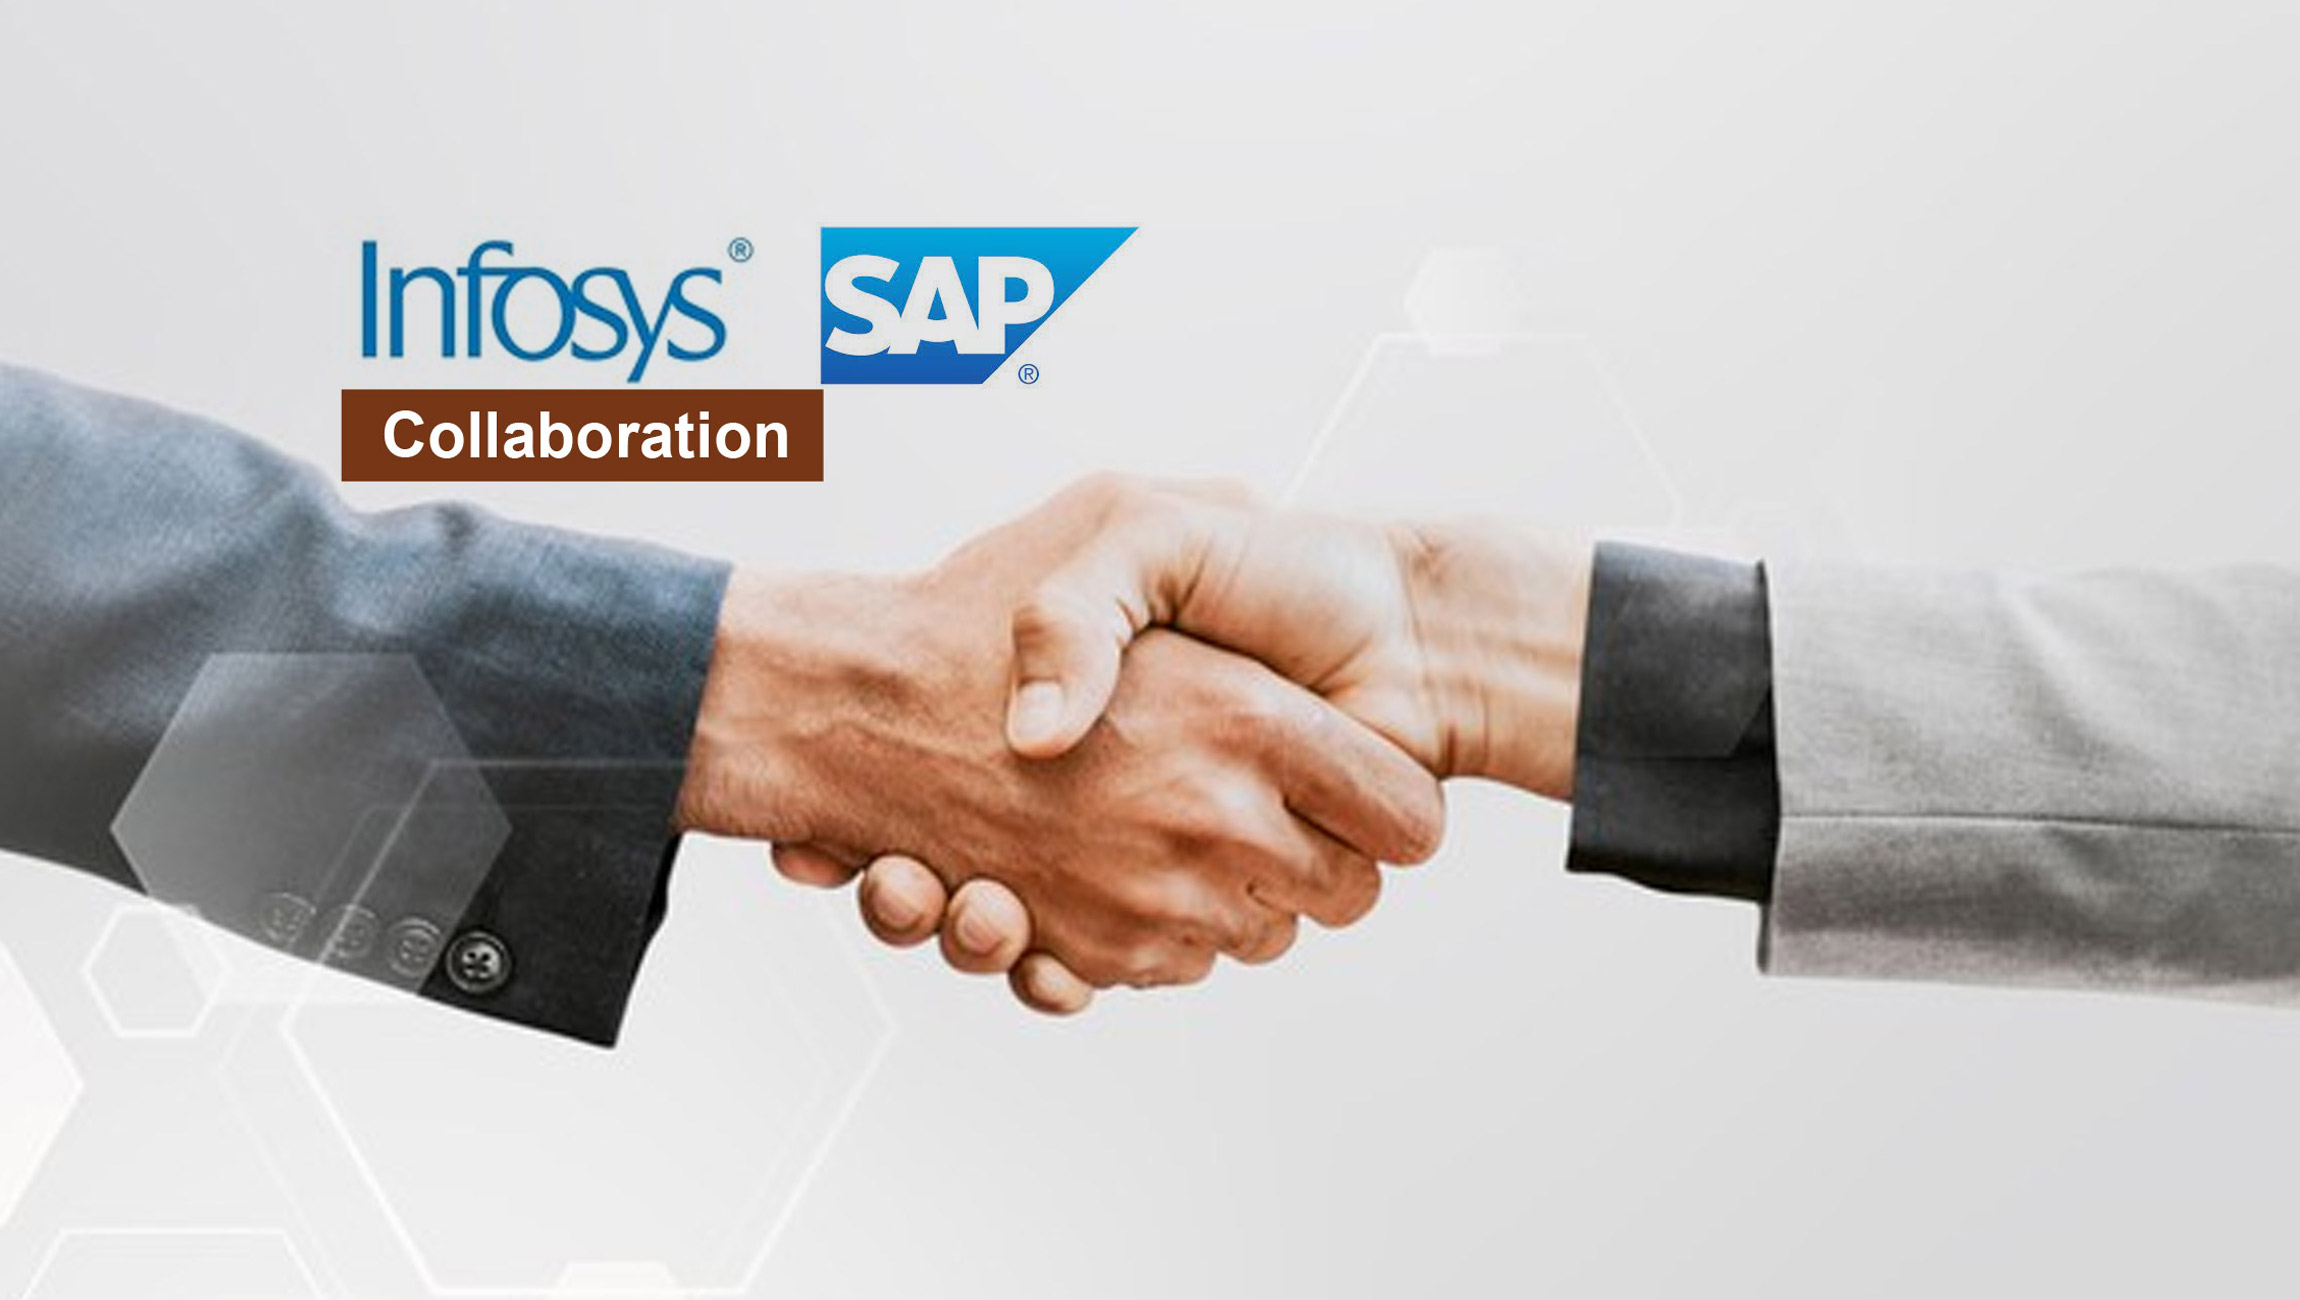 Infosys-and-SAP-Collaborate-to-Provide-Business-Process-Transformation-as-a-Service-to-Enterprises